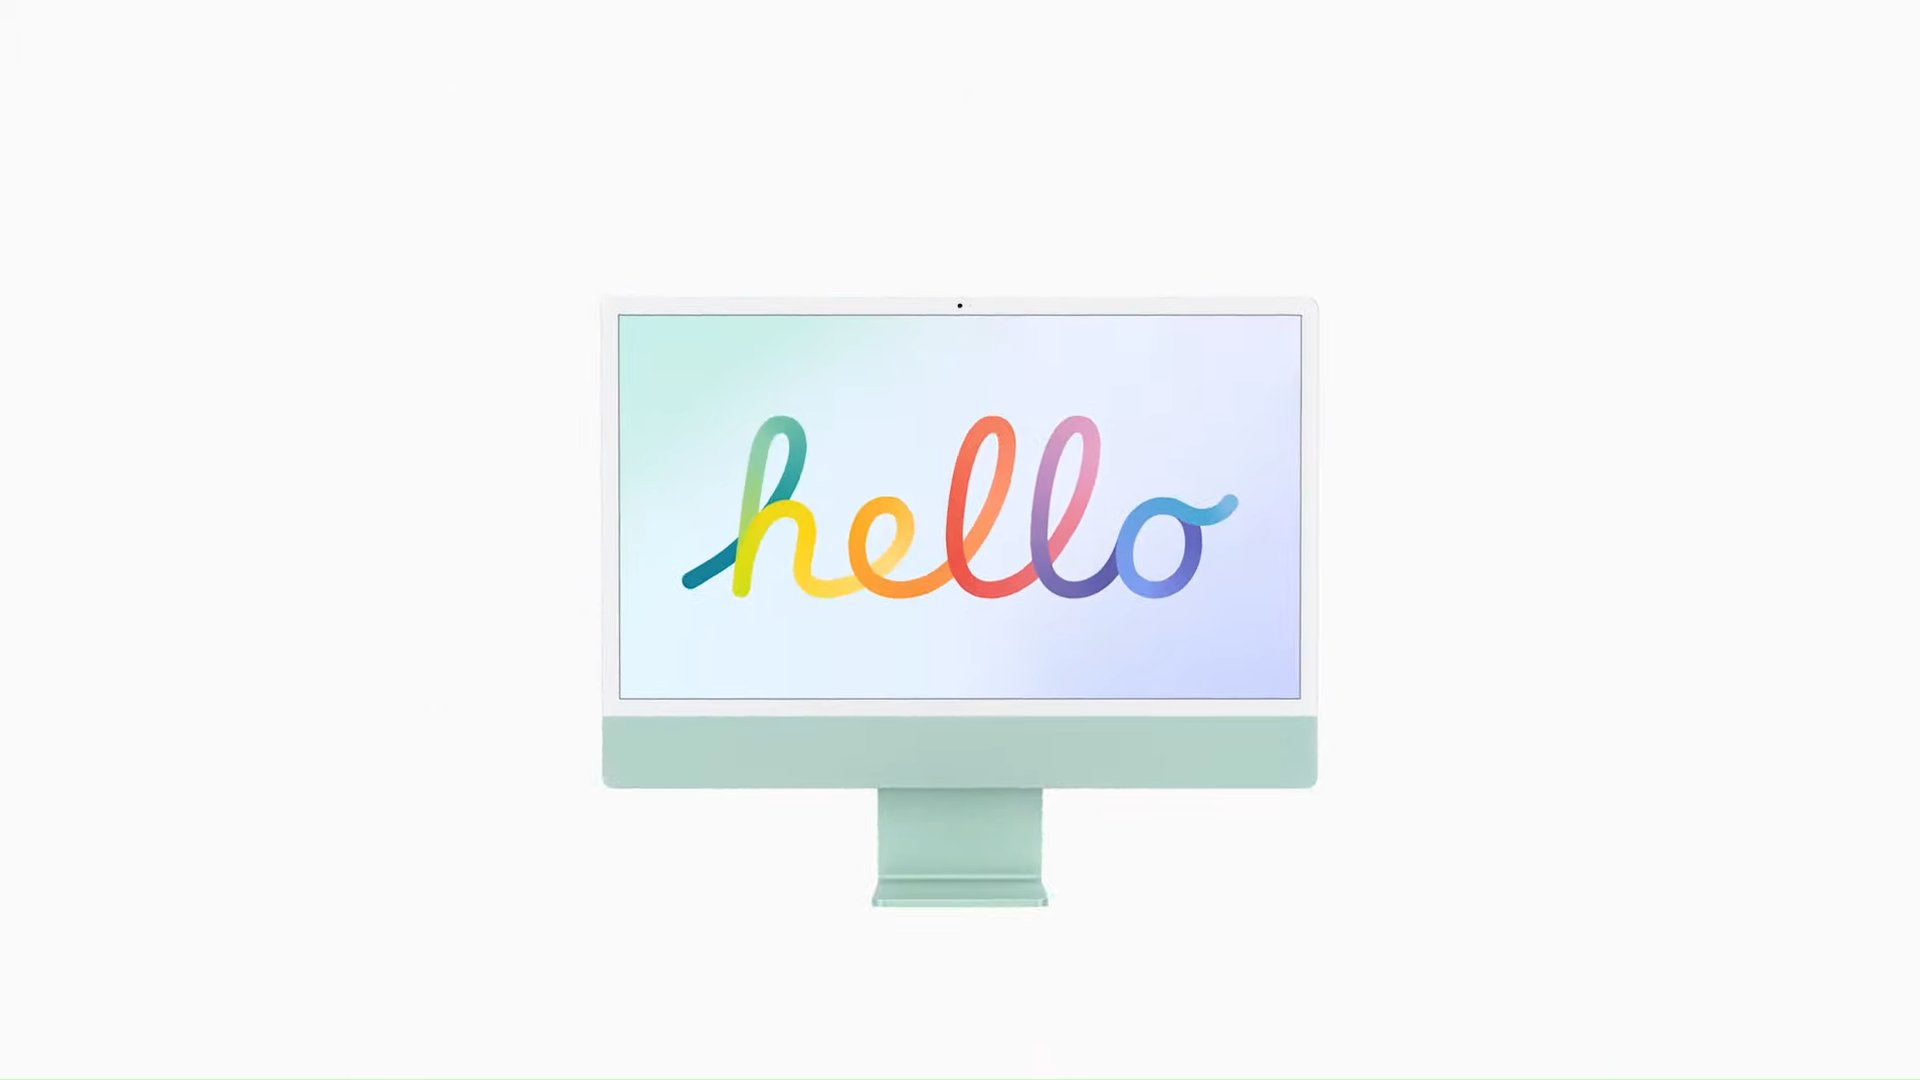 10:53 - iMac 2021 - Official Look